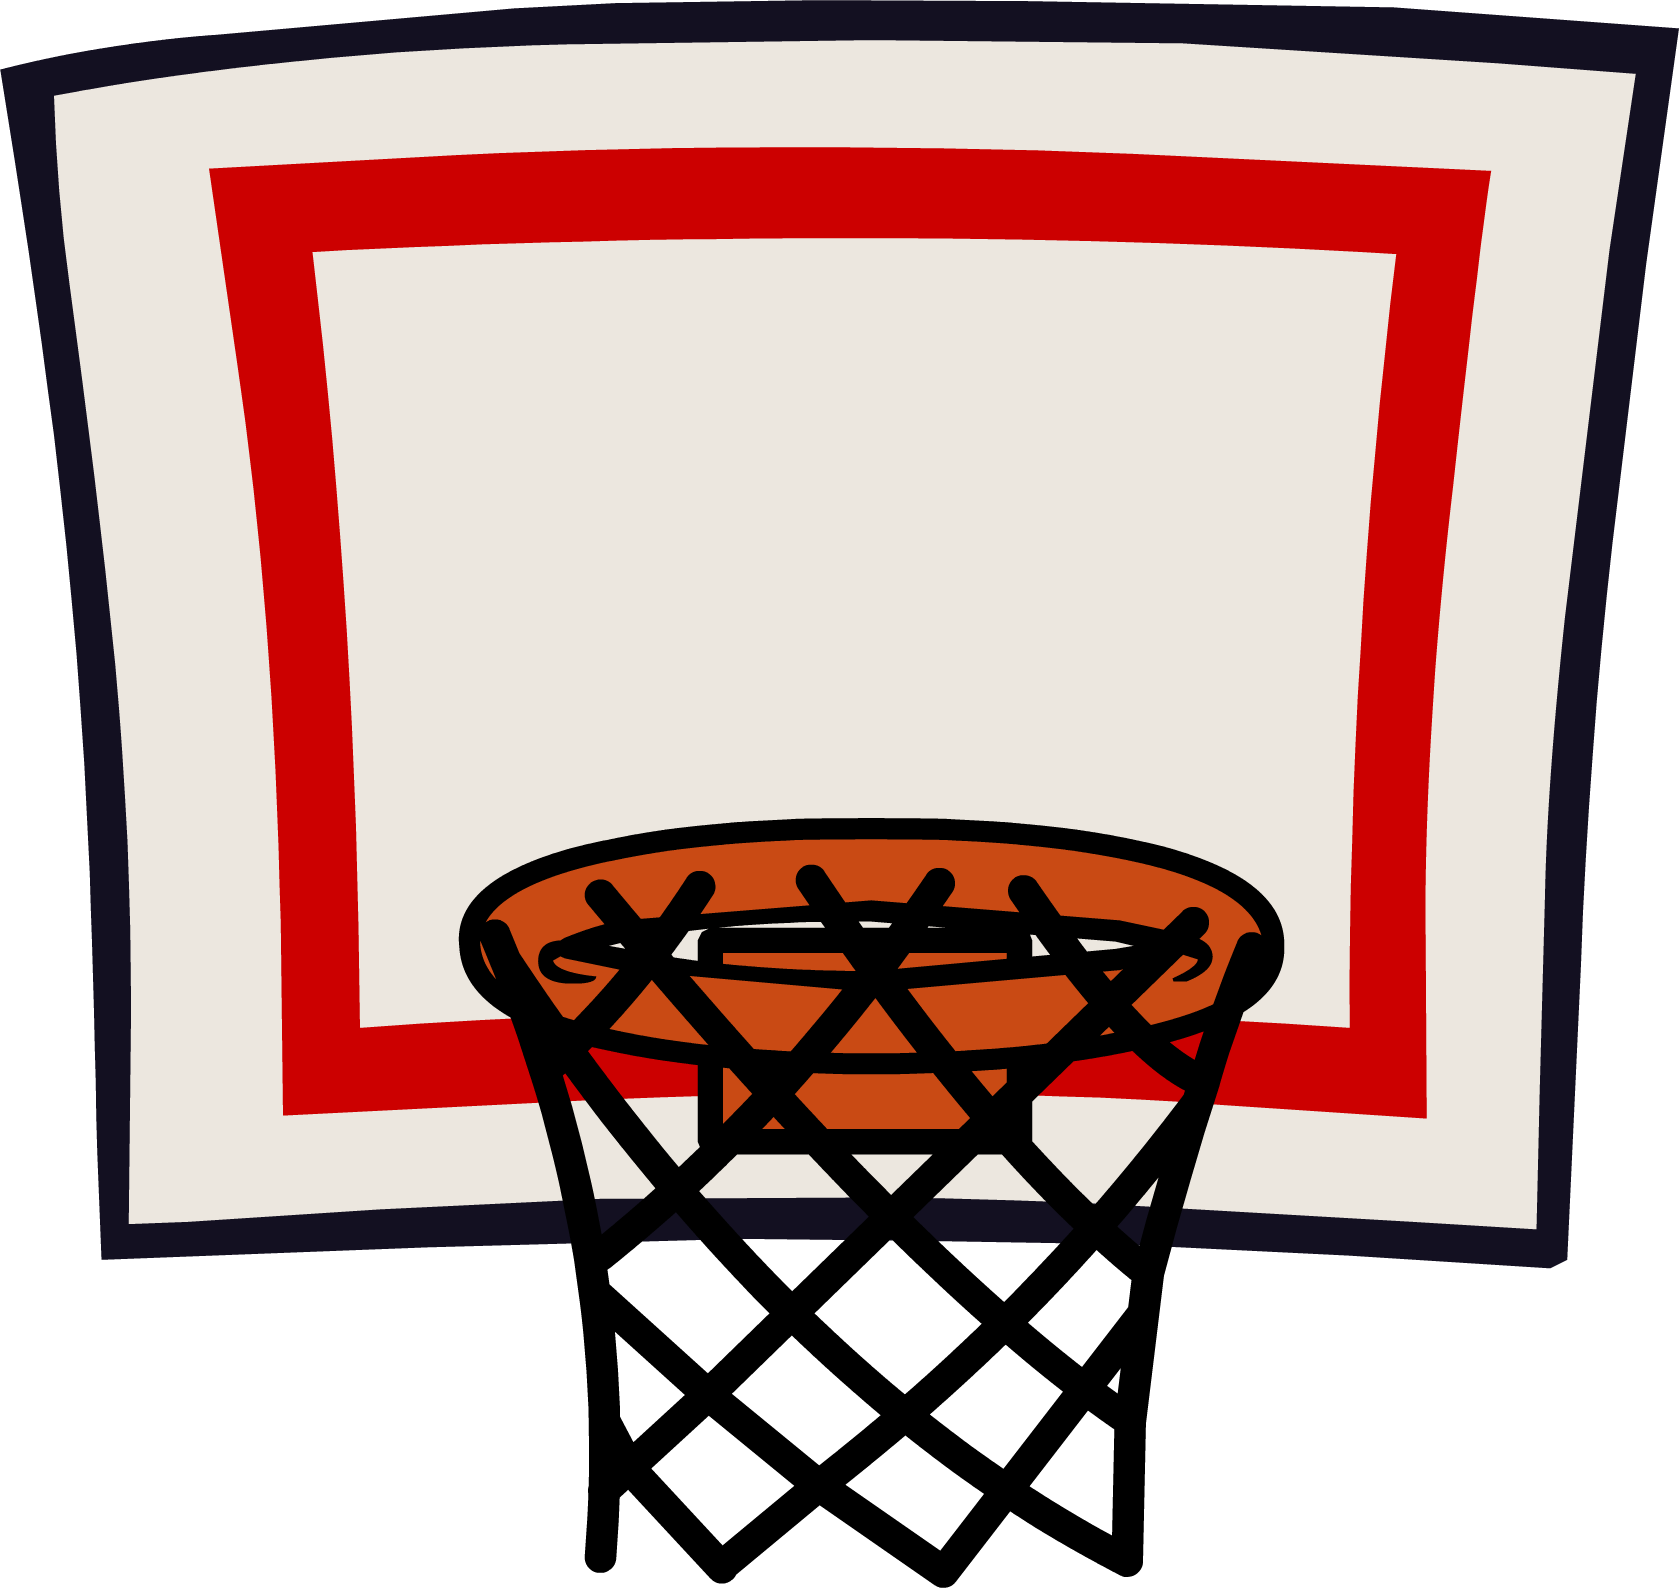 Super basketball clipart banner black and white library Hoop basketball ring net clipart 2 - Clipartix banner black and white library